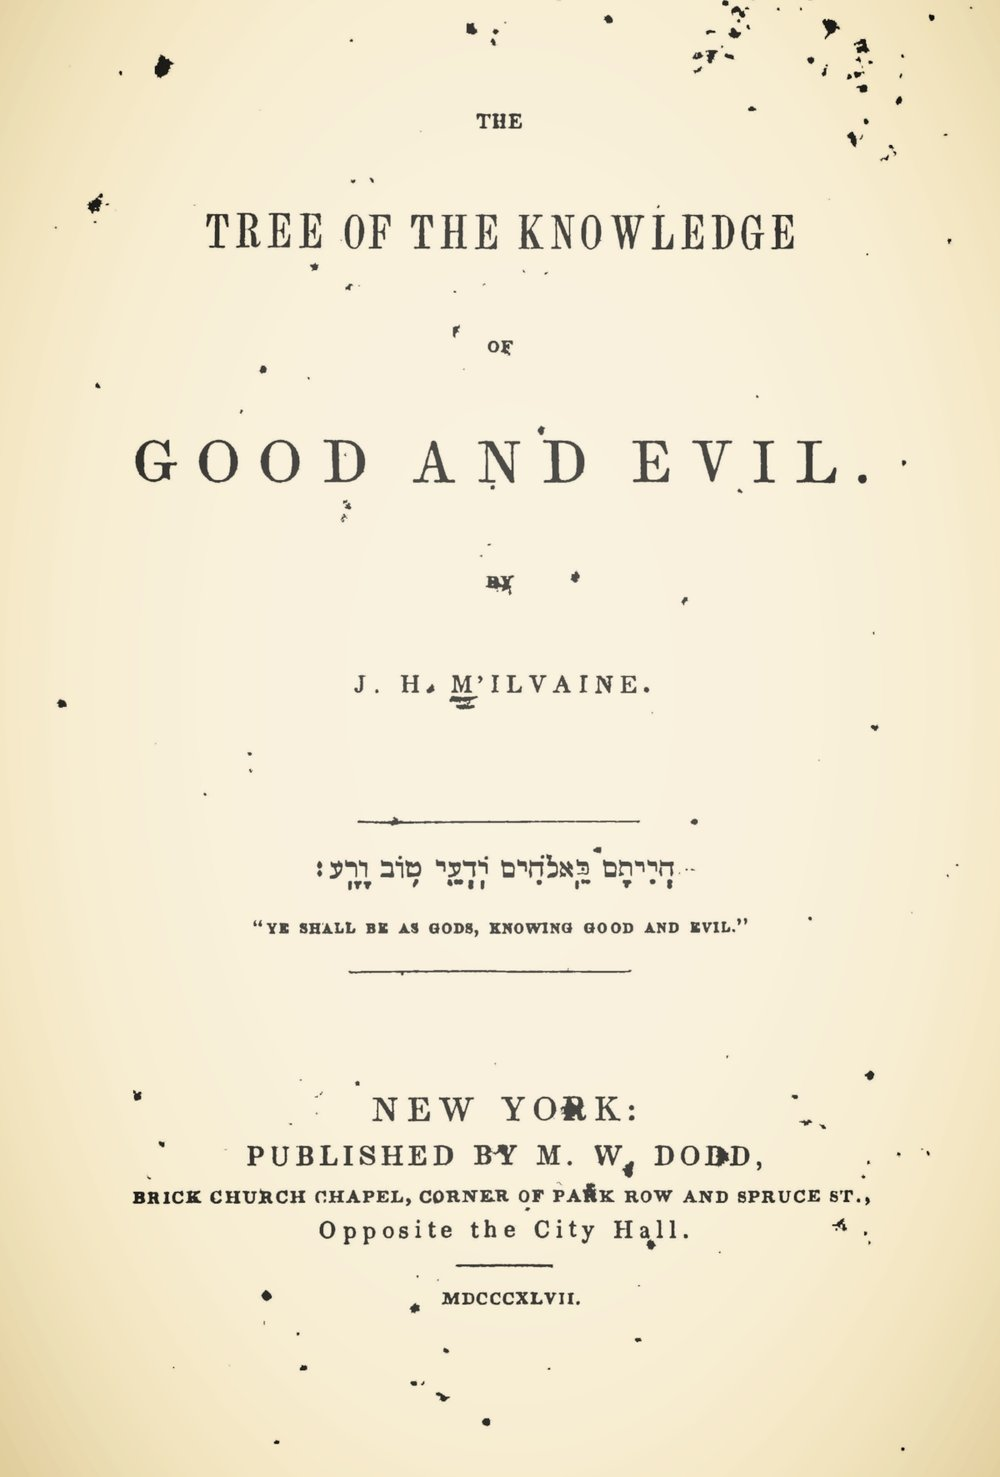 McIlvaine, Joshua Hall, The Tree of the Knowledge of Good and Evil Title Page.jpg